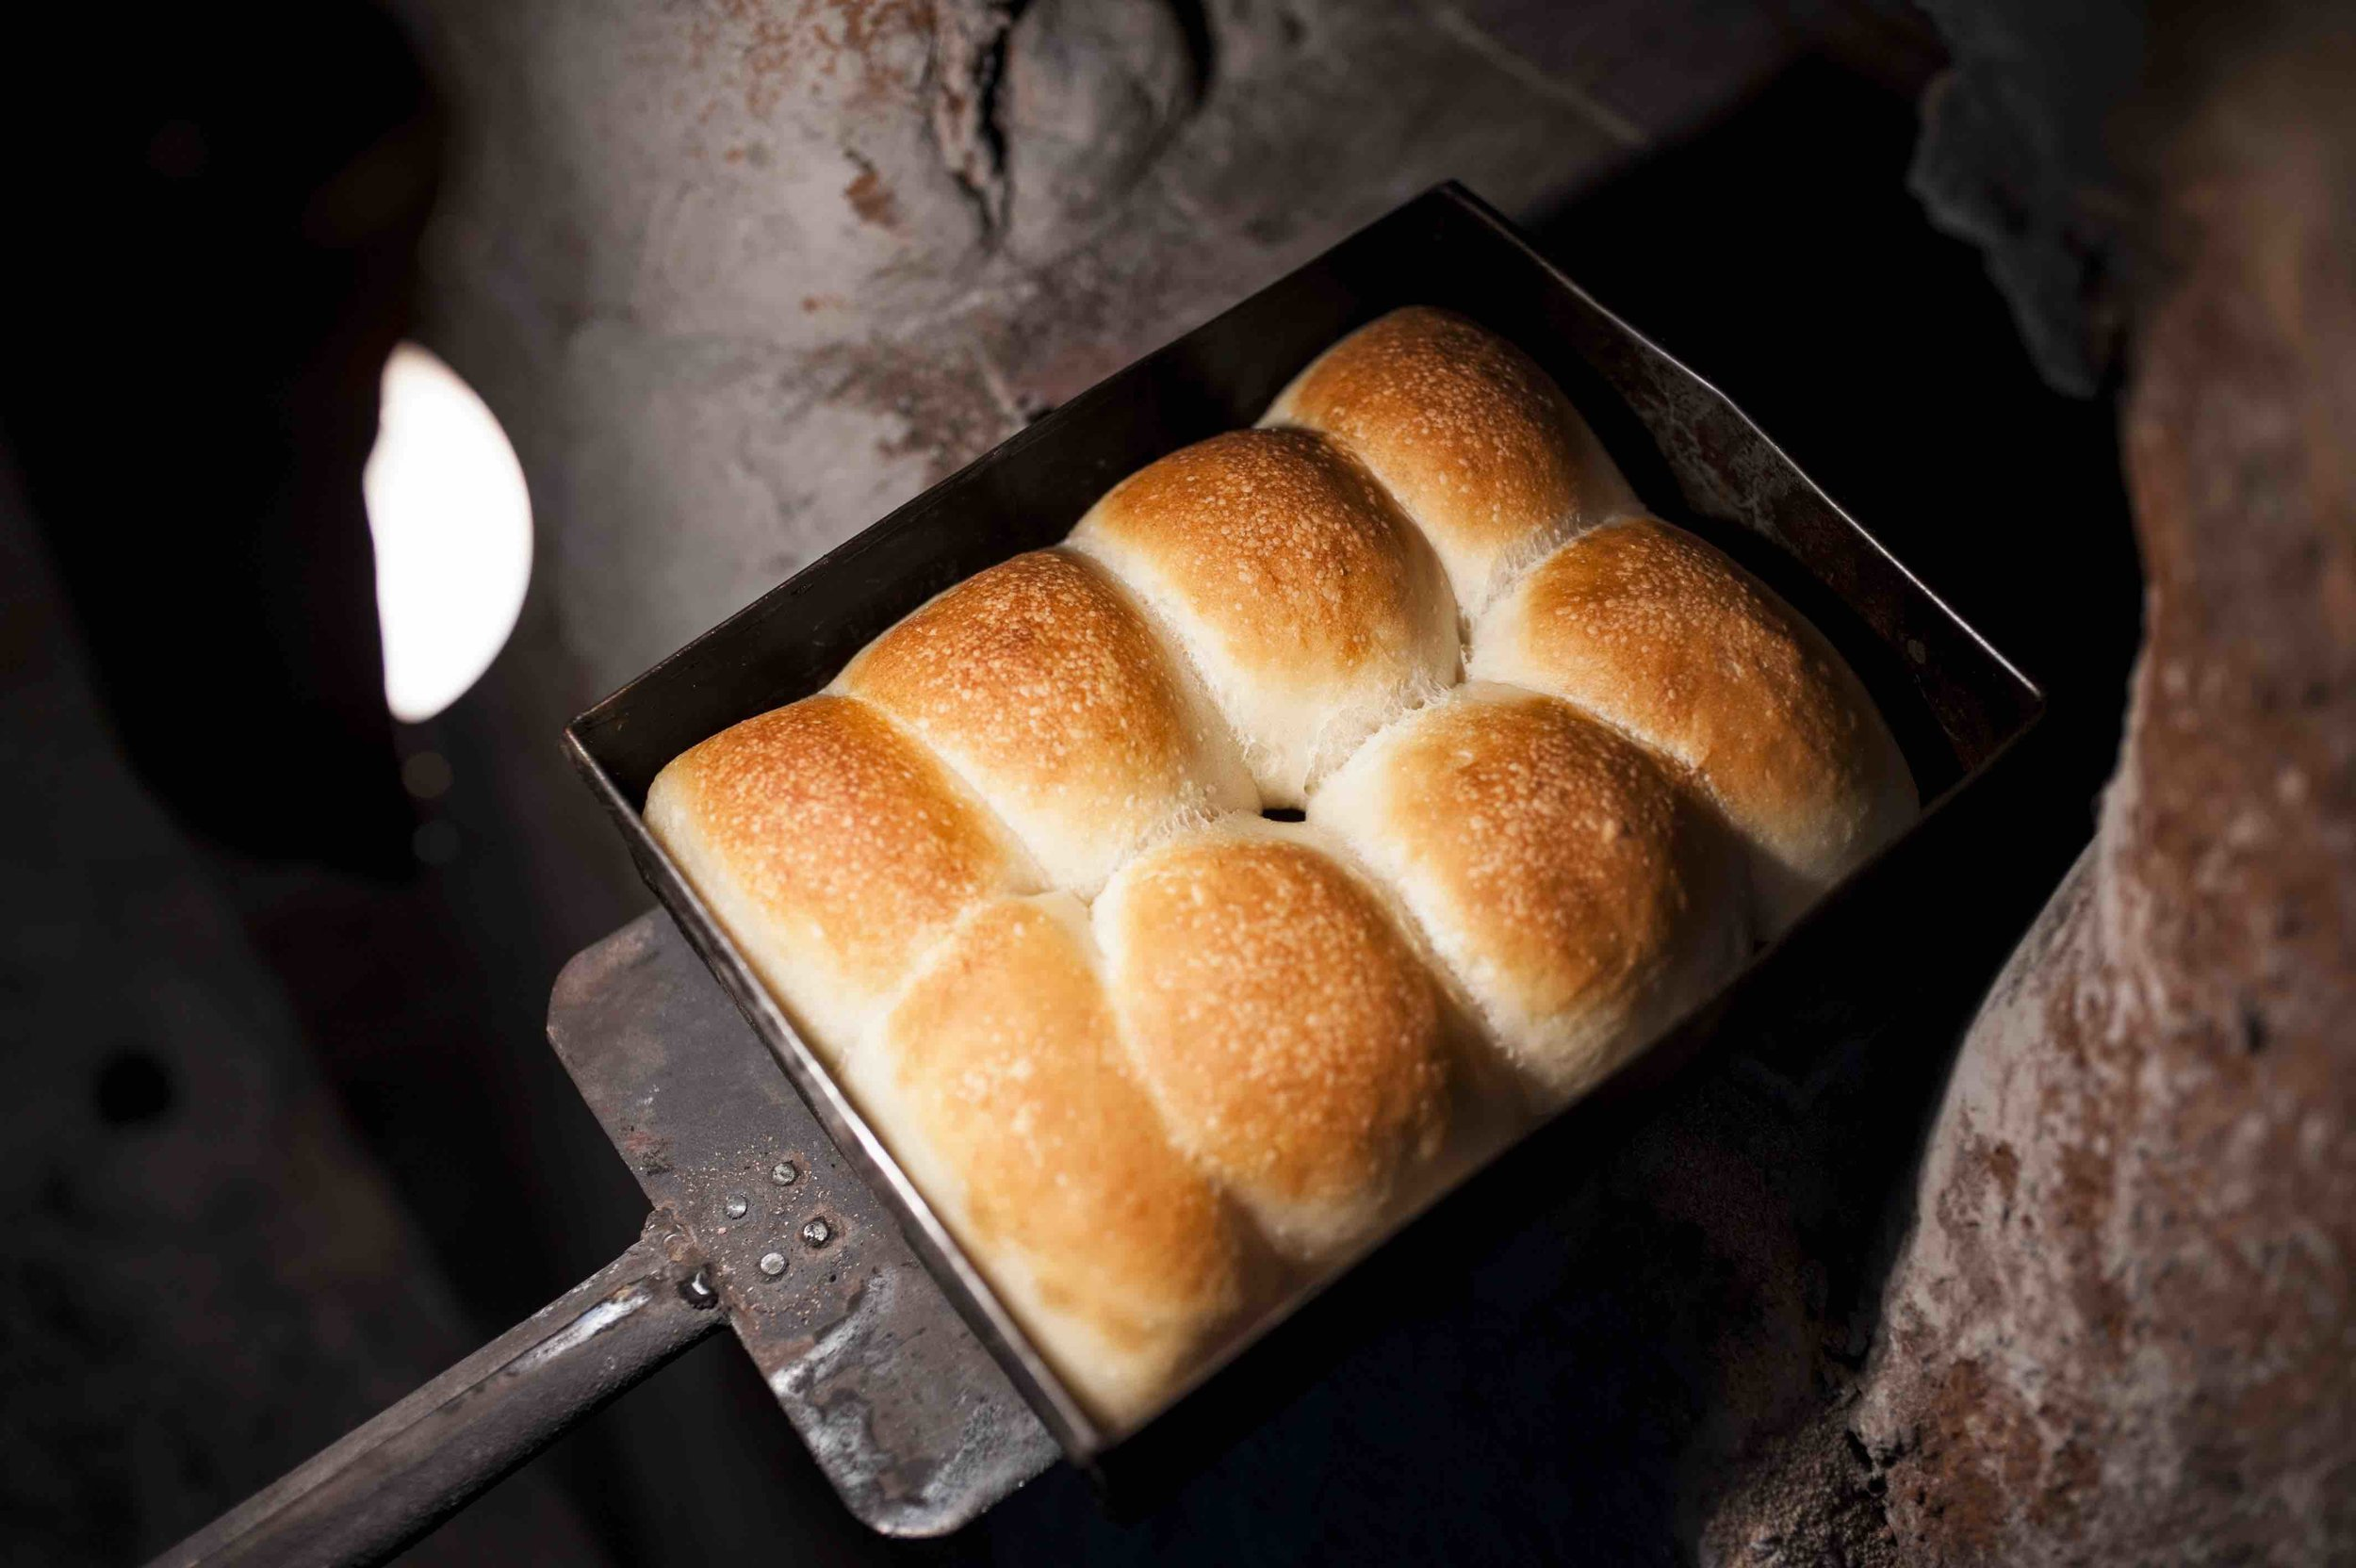 The bread is baked twice a day in the forn. Different breads need different temperatures to bake perfectly. The poie is baked first at the highest temperature, and then the katriche pao, regular pao and last to go in are kankana which are hard and crisp.  Shot in Anton Bakery, Colvale,2017